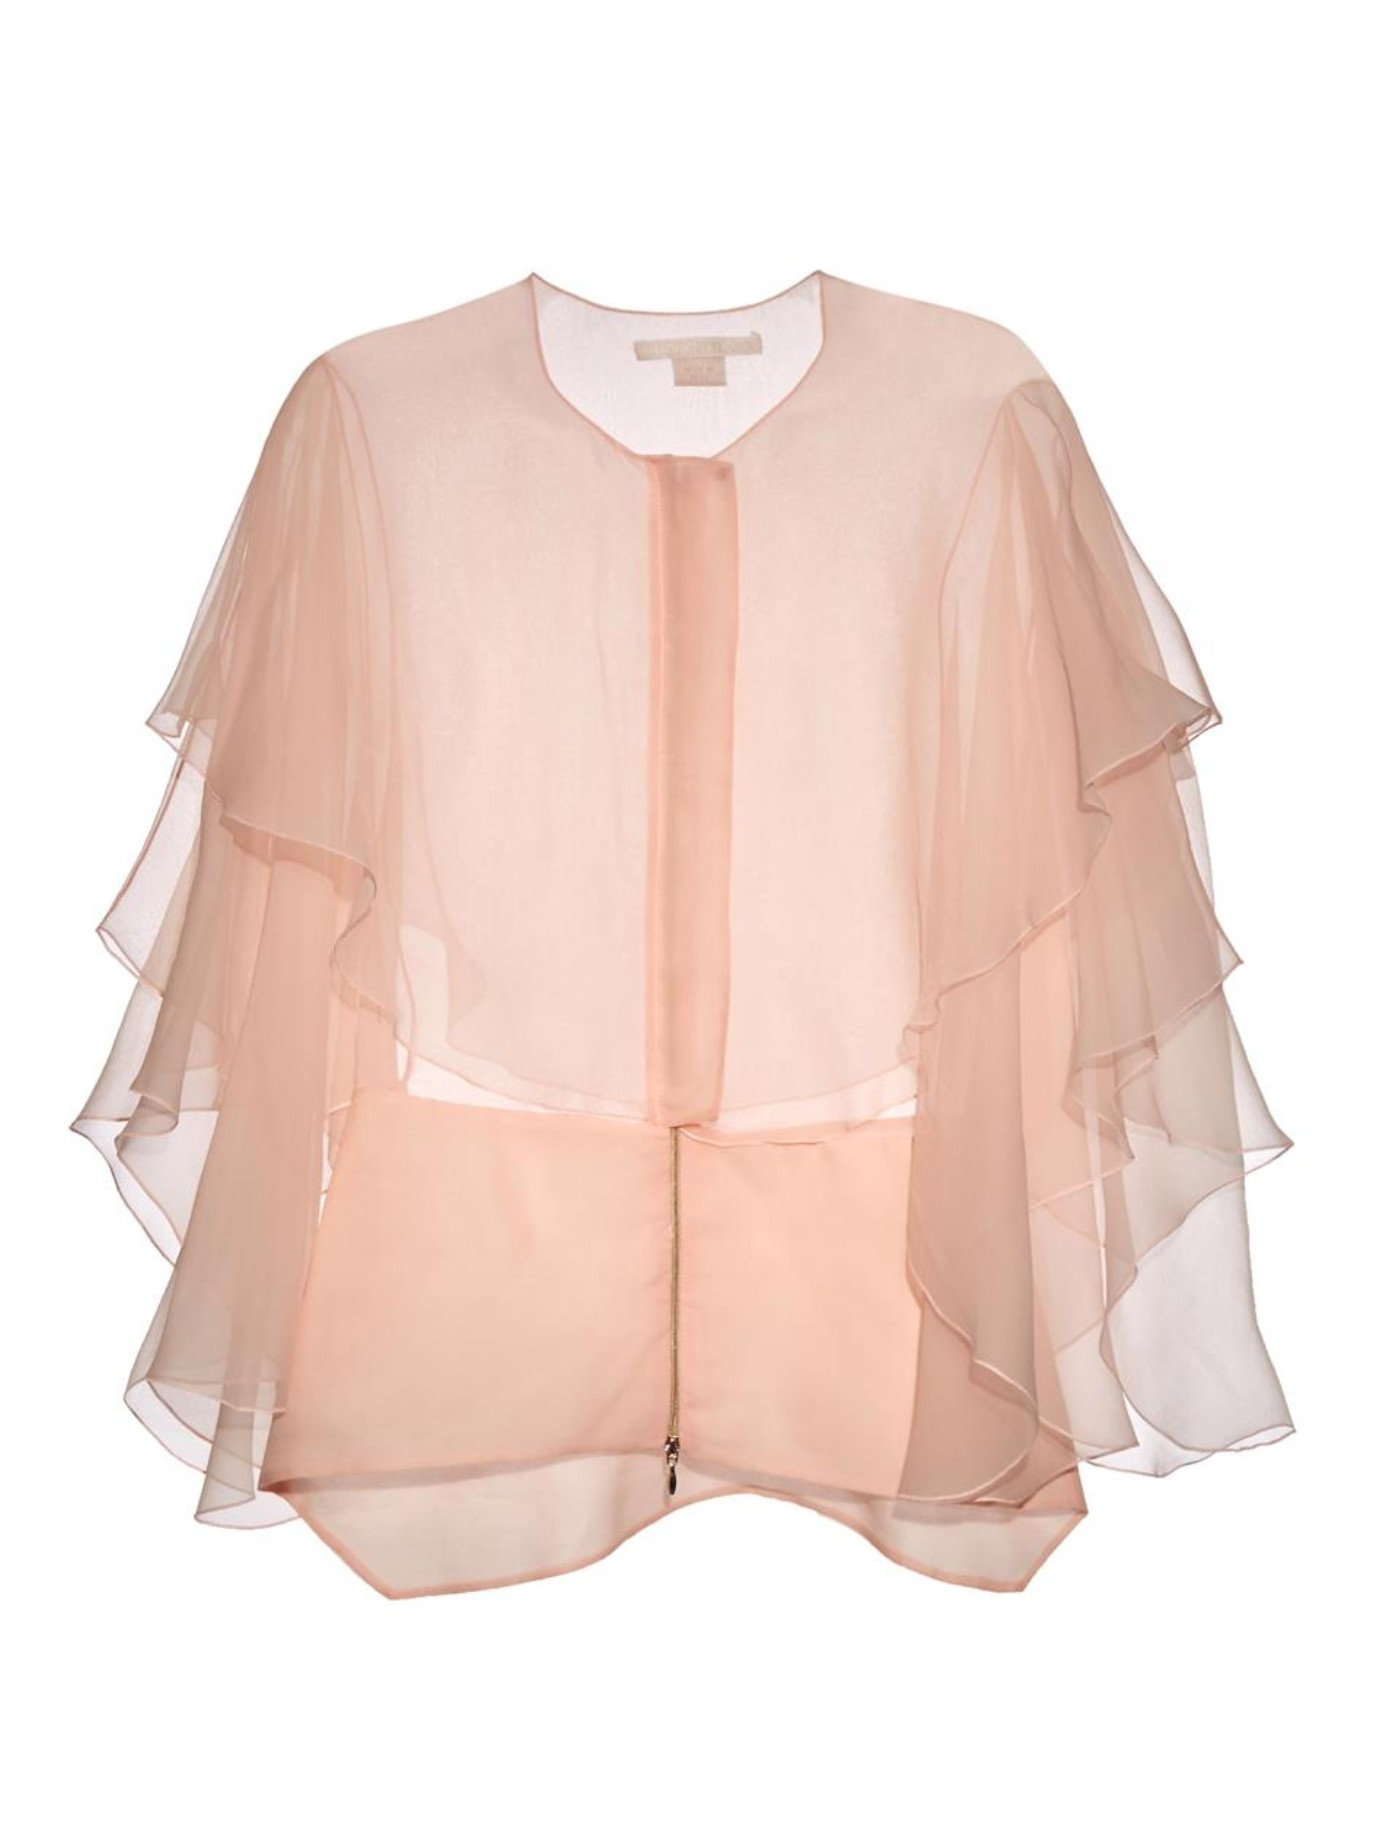 Ruffled Organza Skirt With Embroidered And Beaded Bodice: Antonio Berardi Organza Ruffled Cape Top In Pink (LIGHT